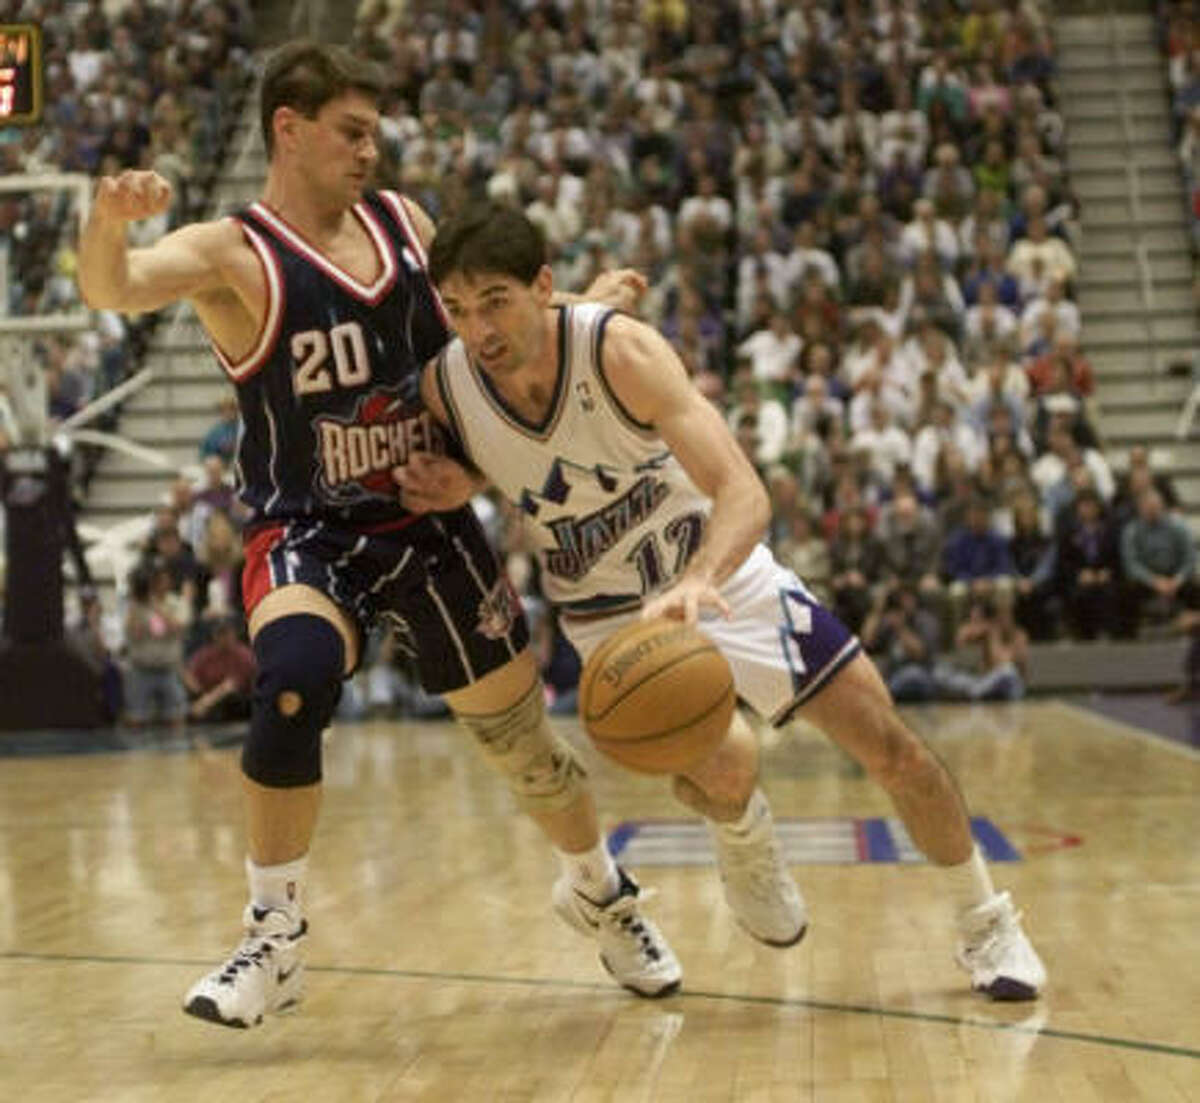 John Stockton Stockton played point guard for the Utah Jazz for 19 seasons. He averaged 13.1 points and 10.5 assists a game for his career. He is the NBA's all-time total assists leader with 15,806.